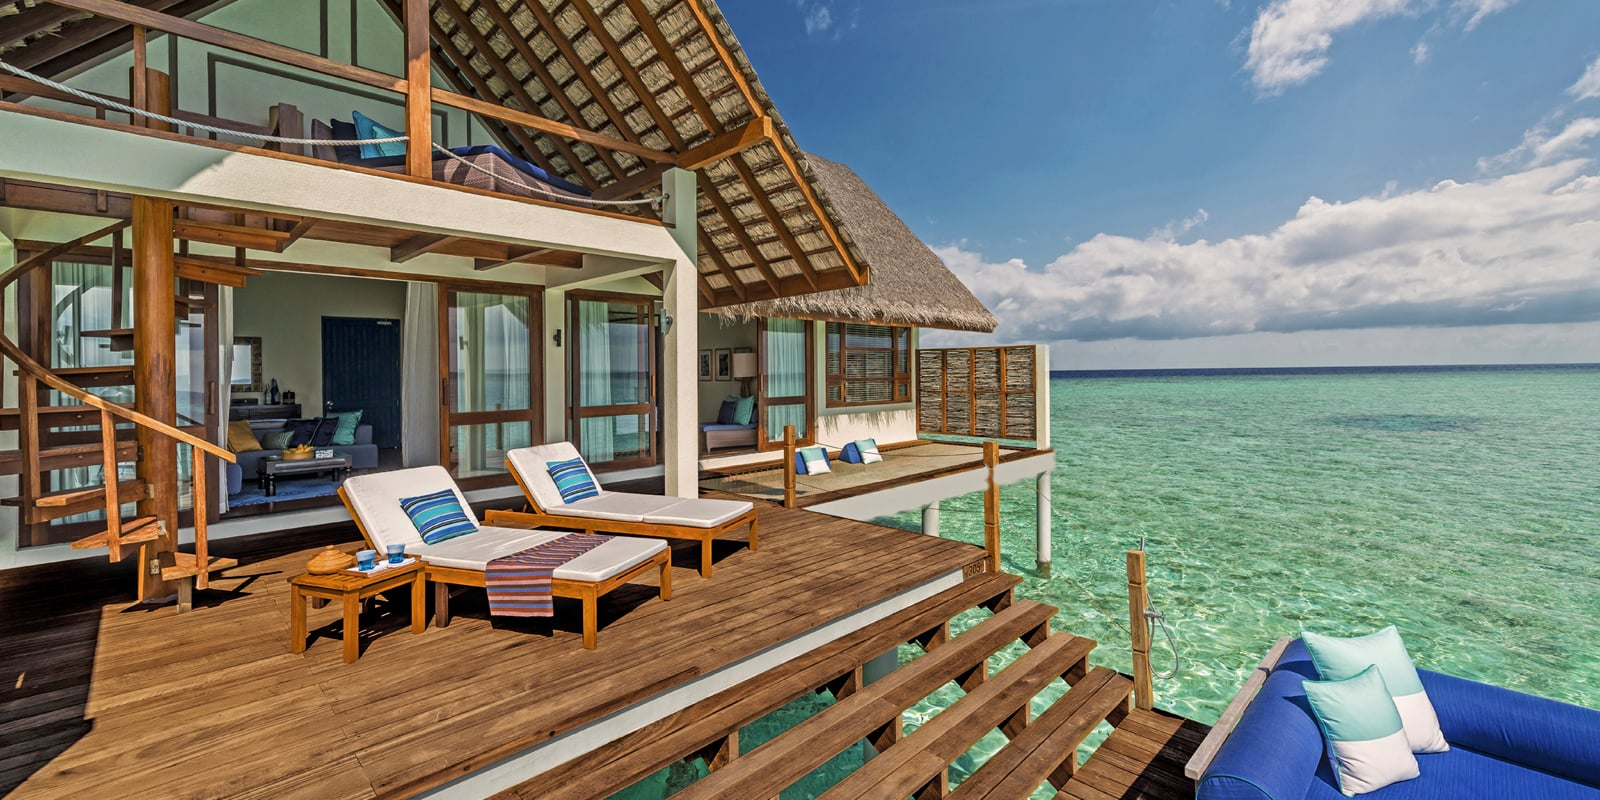 OCOA-4SEASONS-LANDAA-MALDIVES-6